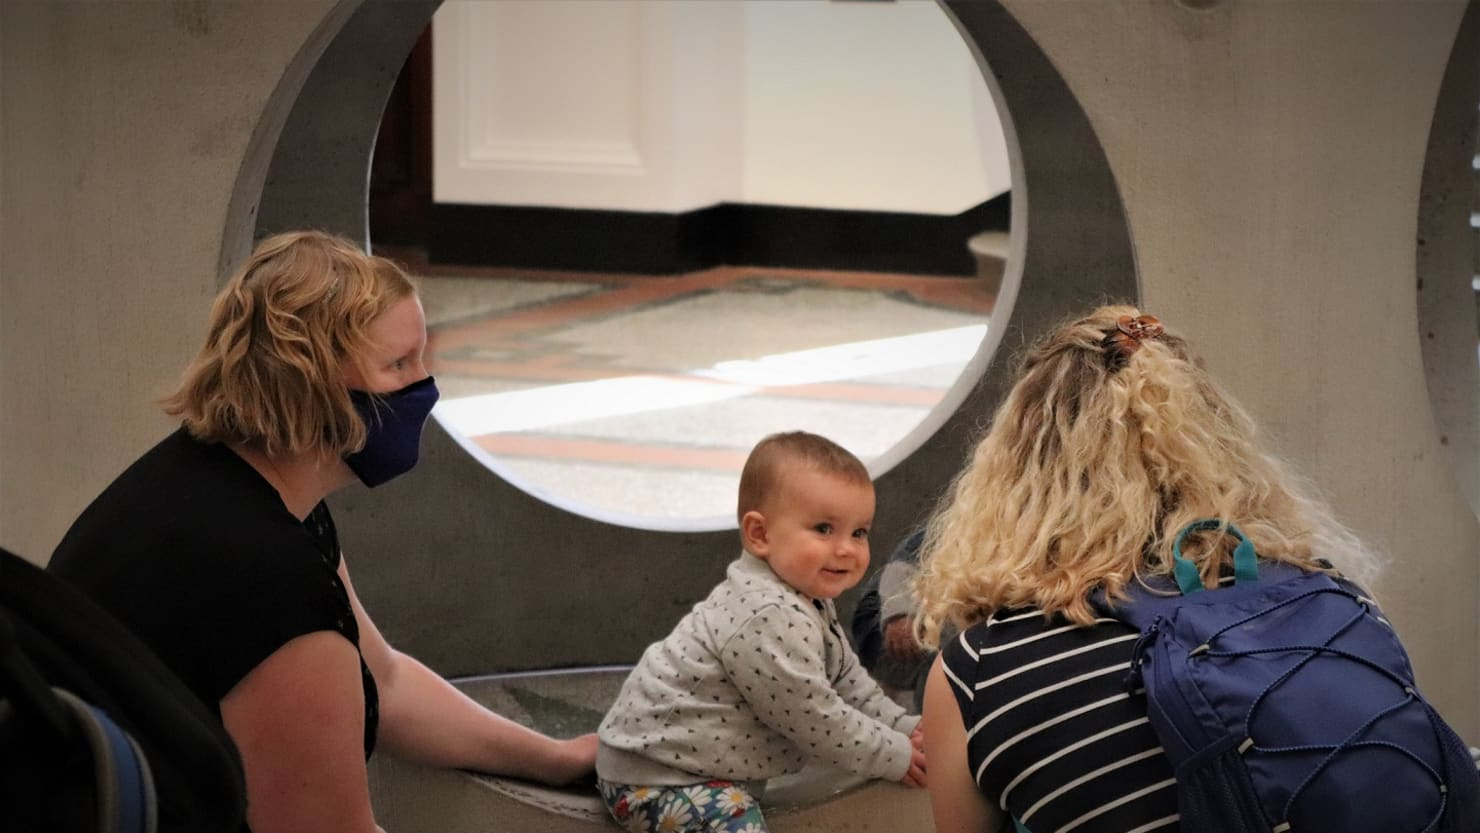 A family with a small baby interact with The Box's 'Figurehead II' sculpture by Alexandre da Cunha